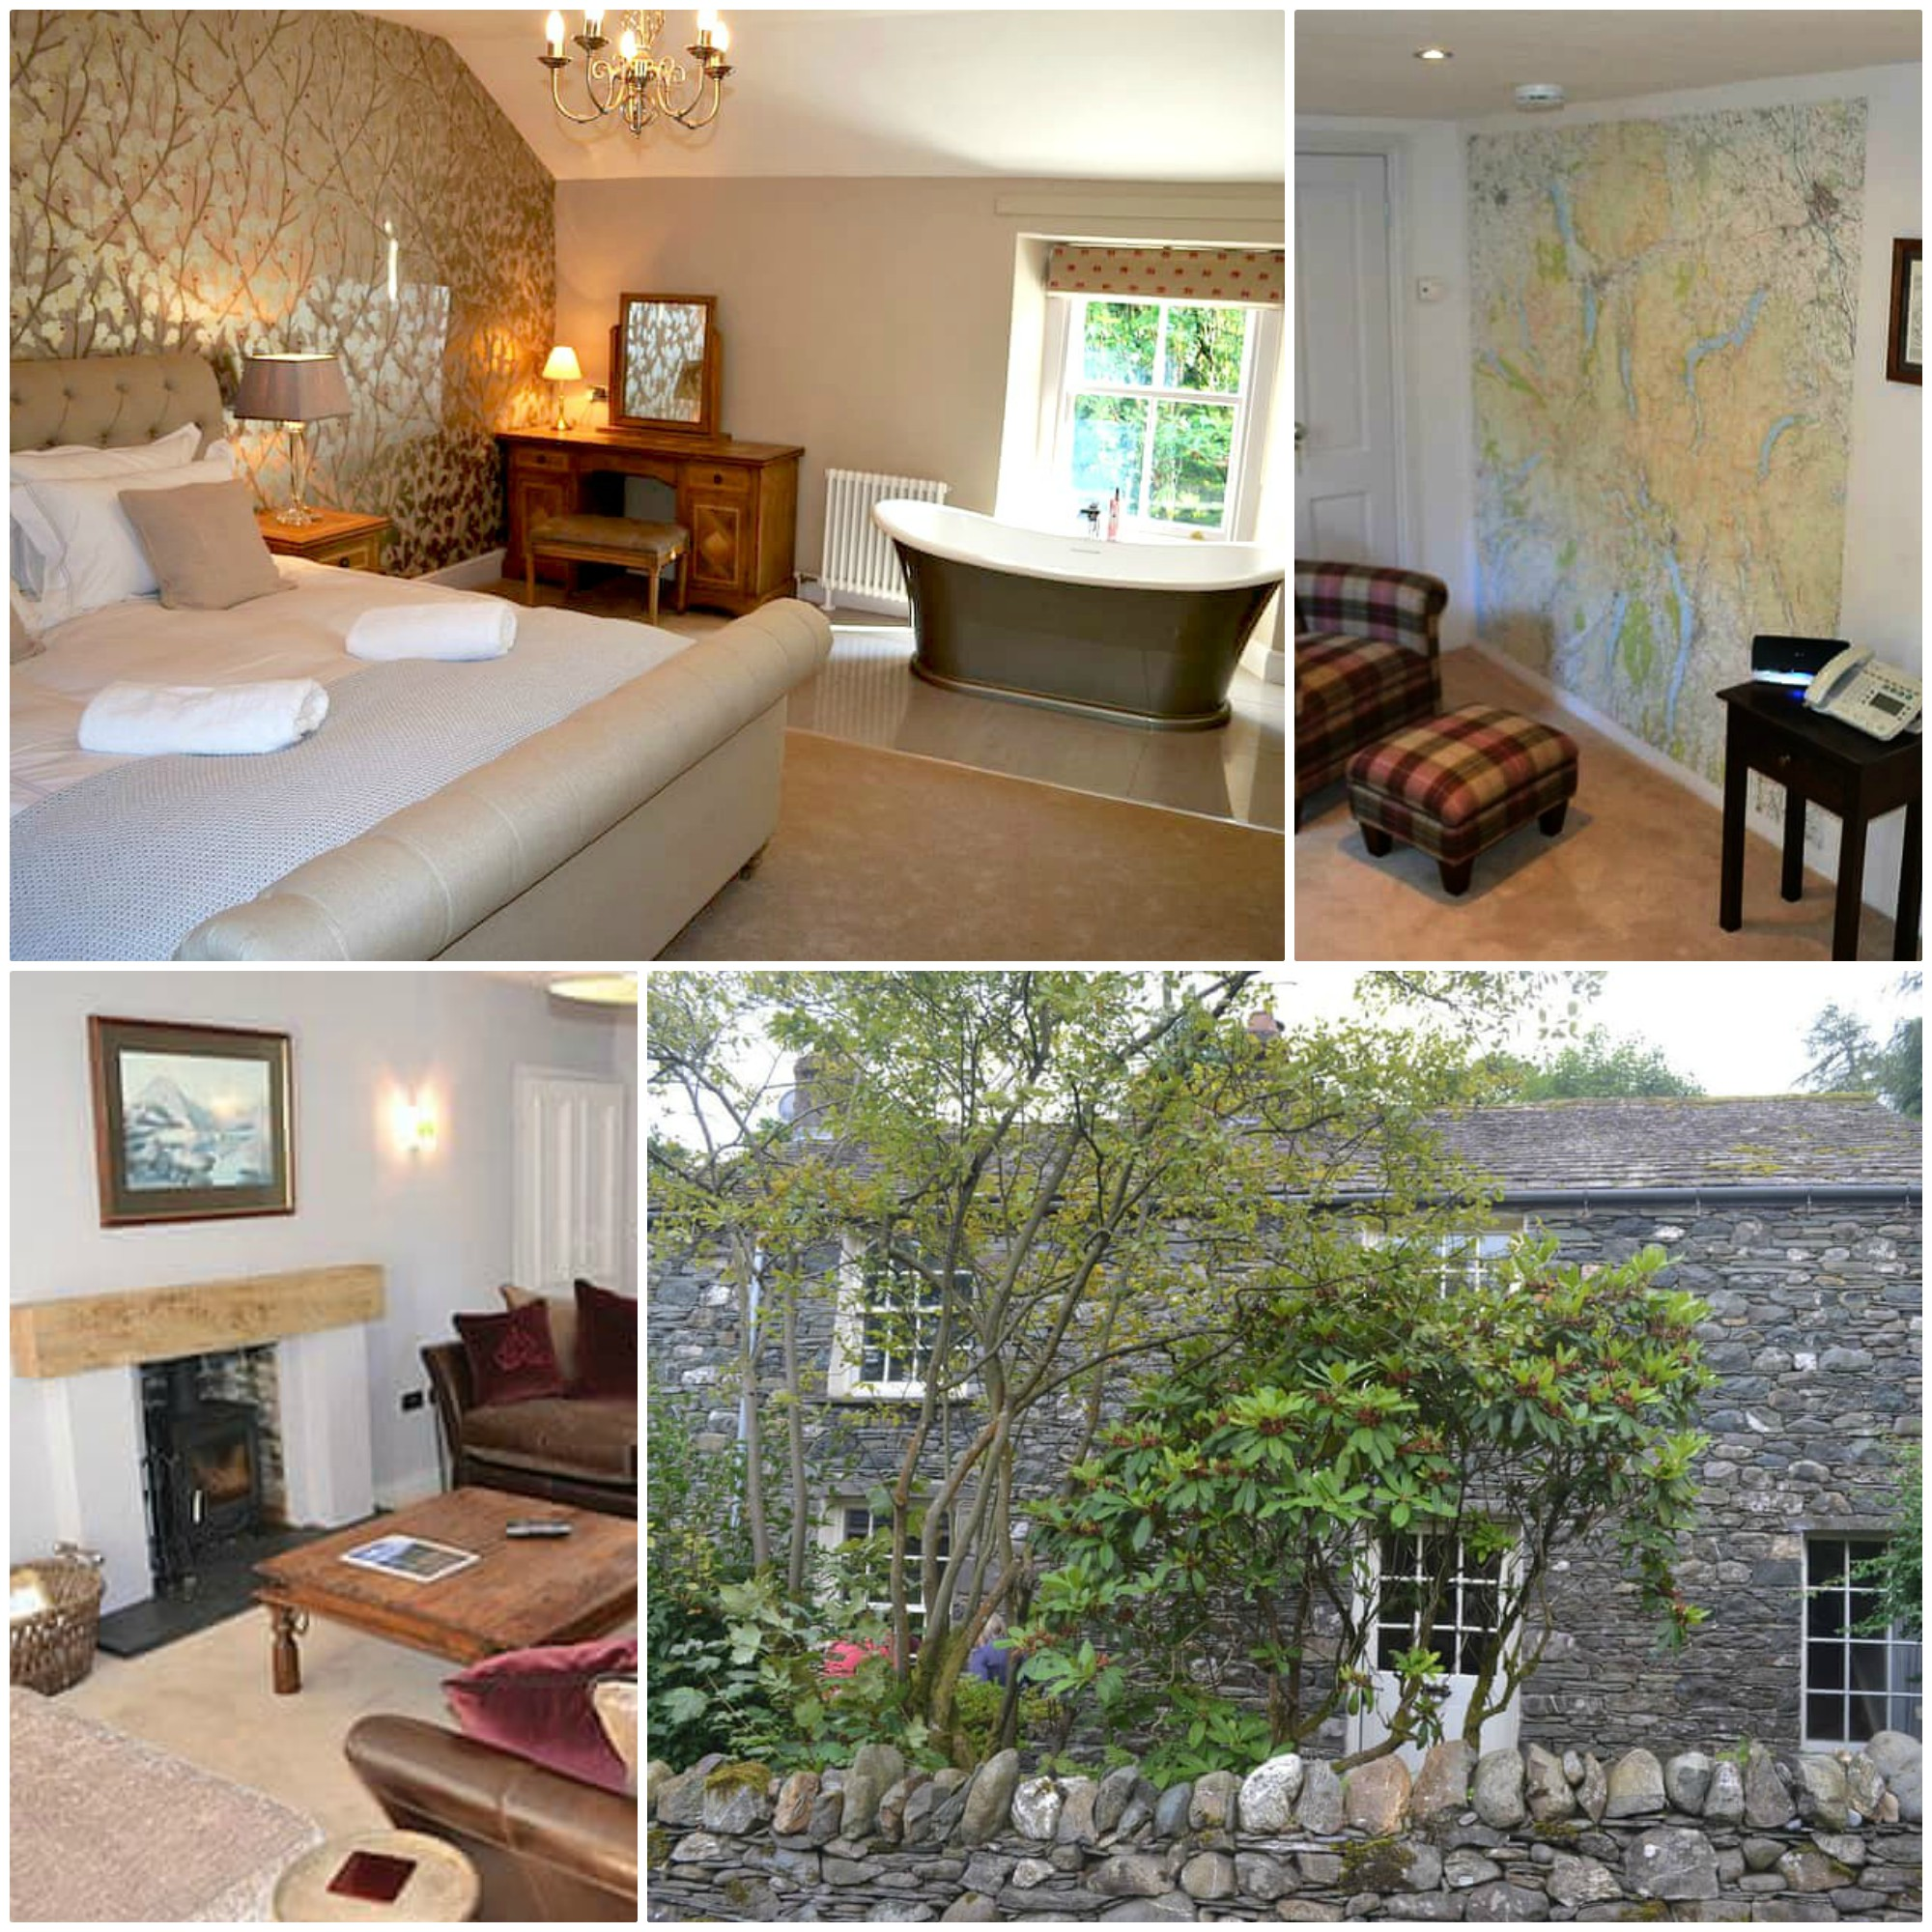 this lovely traditional Lakeland cottage has so many WOW factors, one of them is that it featured in The Telepgraphs's most remote holiday cottages